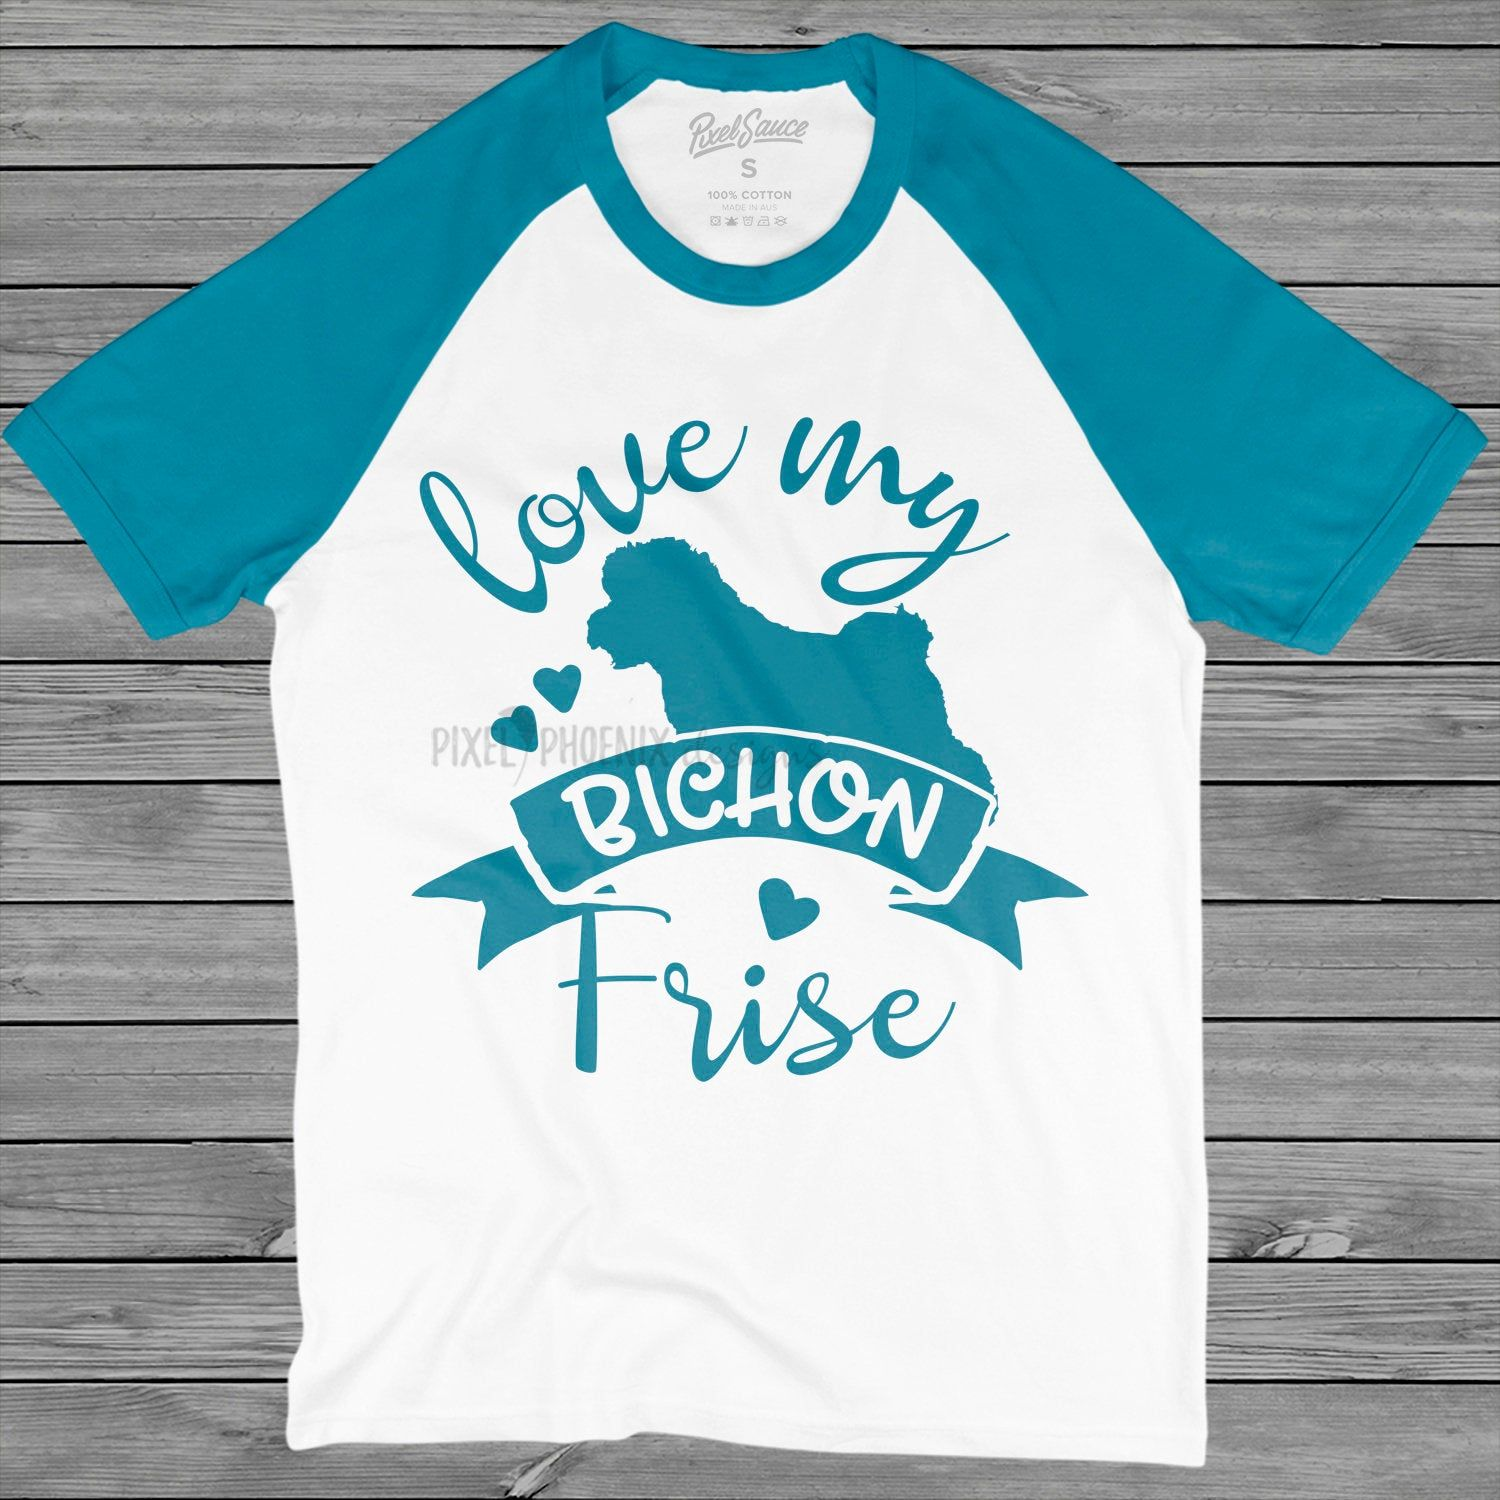 Love my Bichon Frise, Bichon Frise SVG, Dog mom SVG, dog